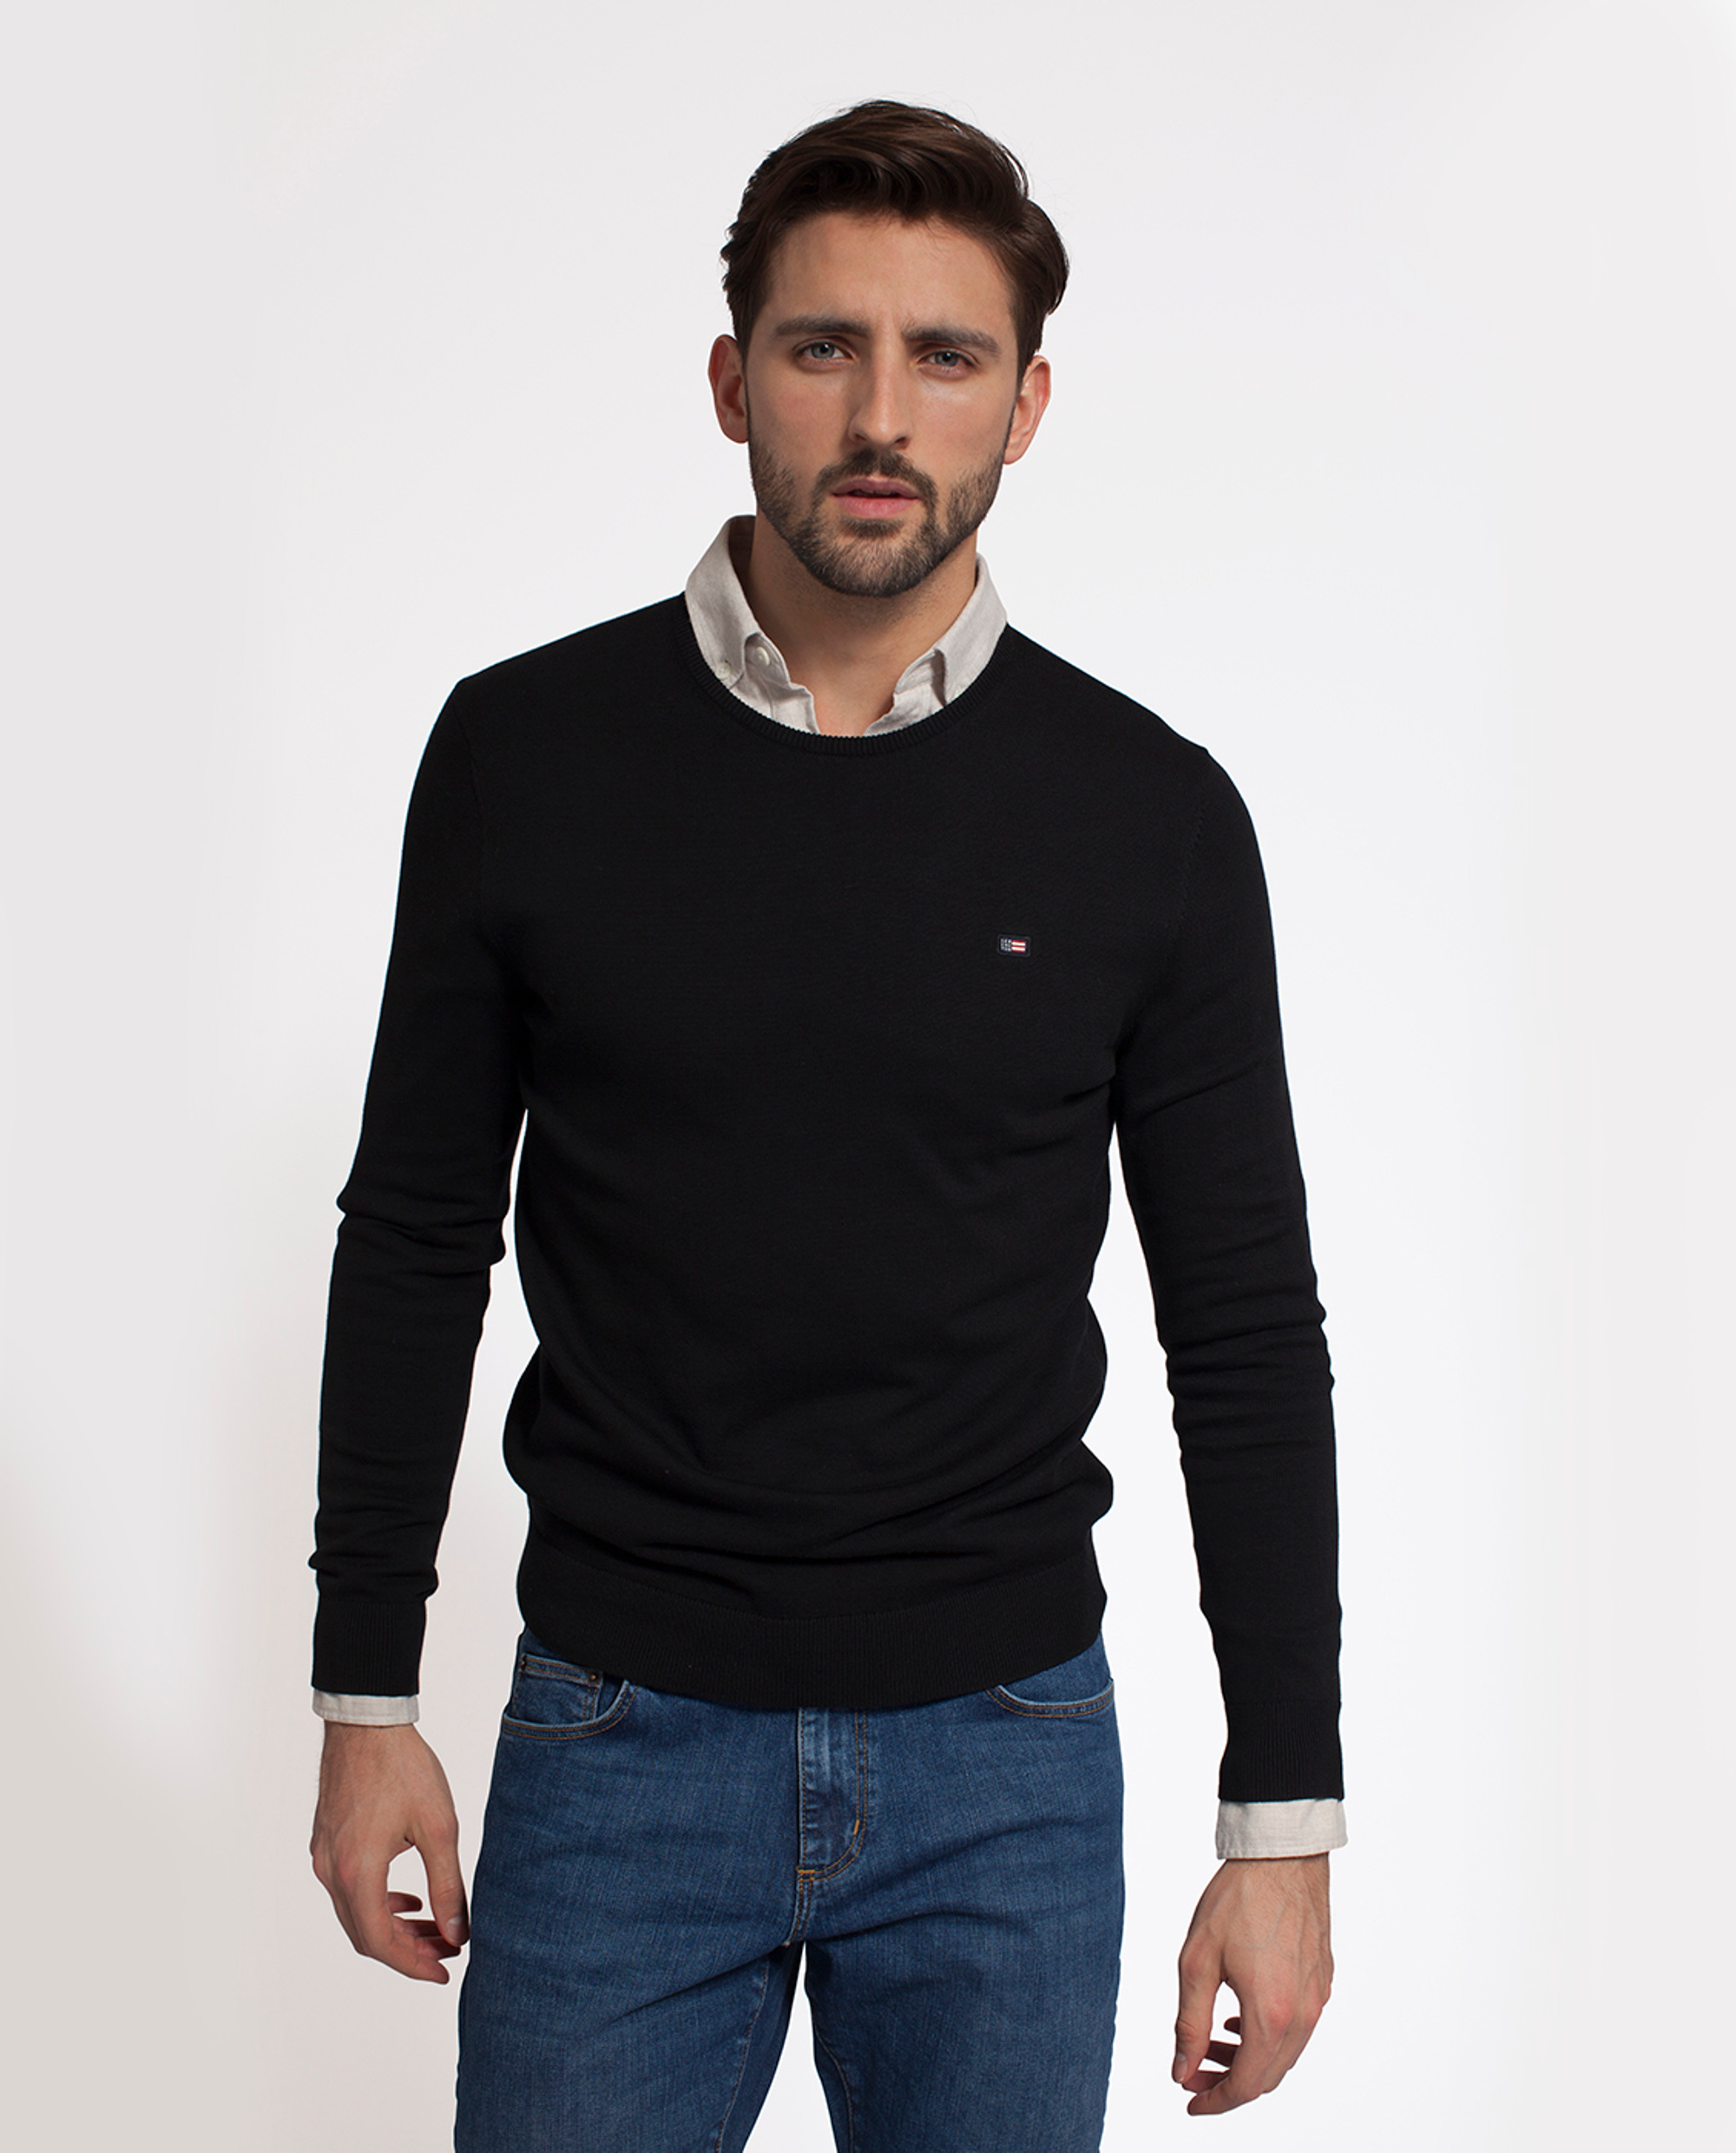 Bradley Cotton Crewneck Sweater, Caviar Black